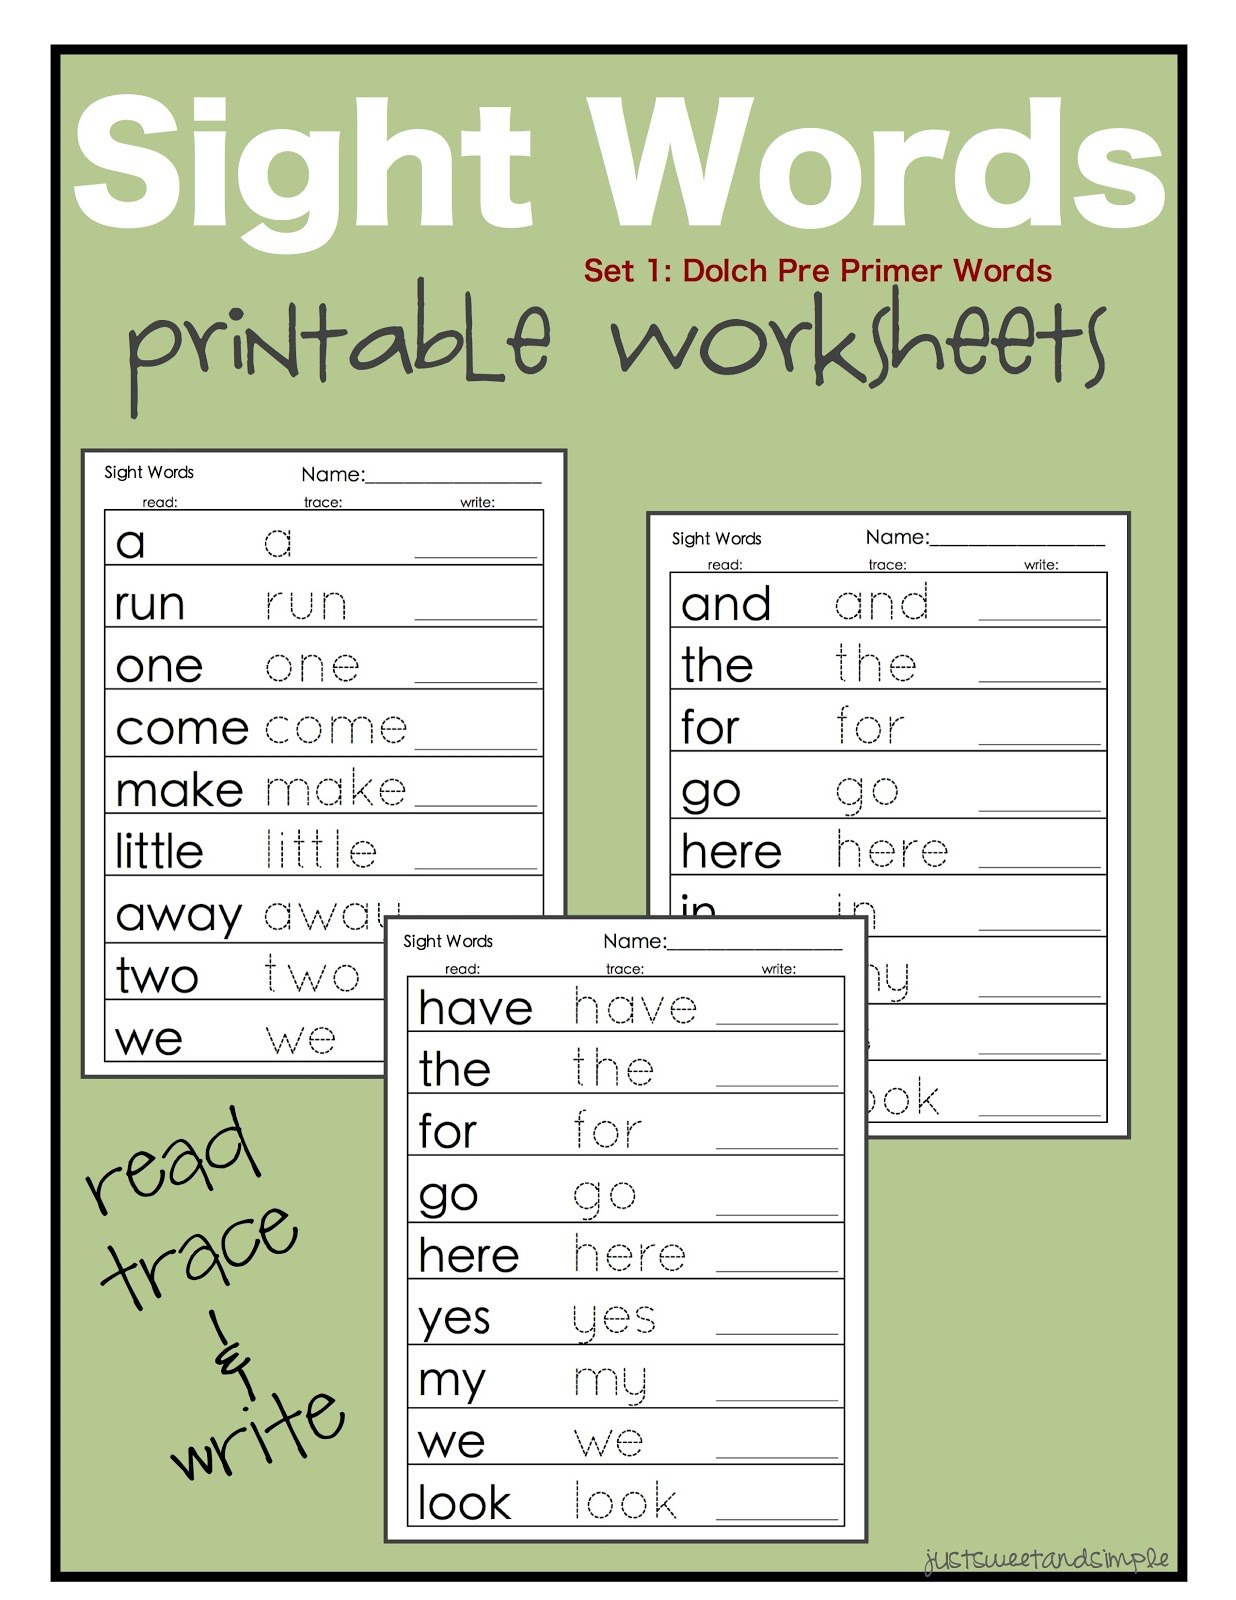 include other the that worksheets sight all Words  printable of word Dolch for free worksheets like my Sight